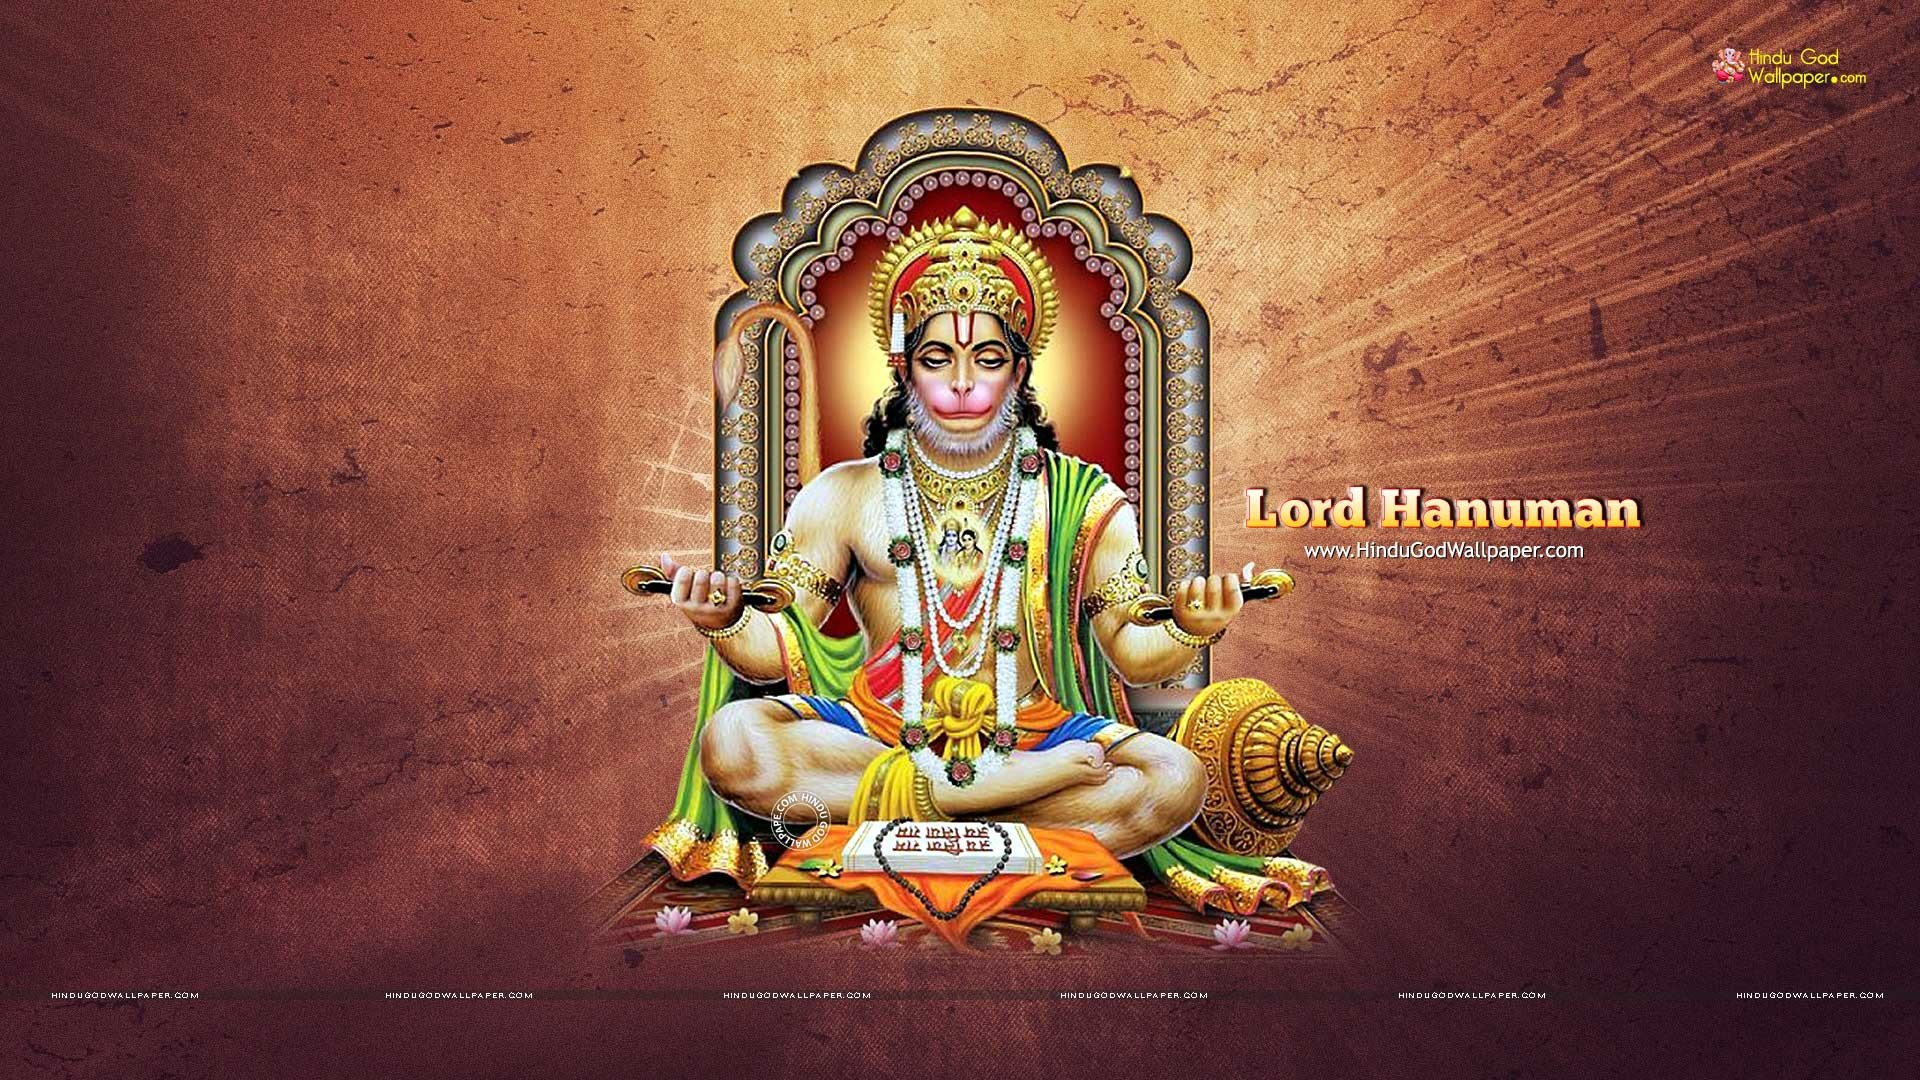 hanuman wallpaper hd 72 images